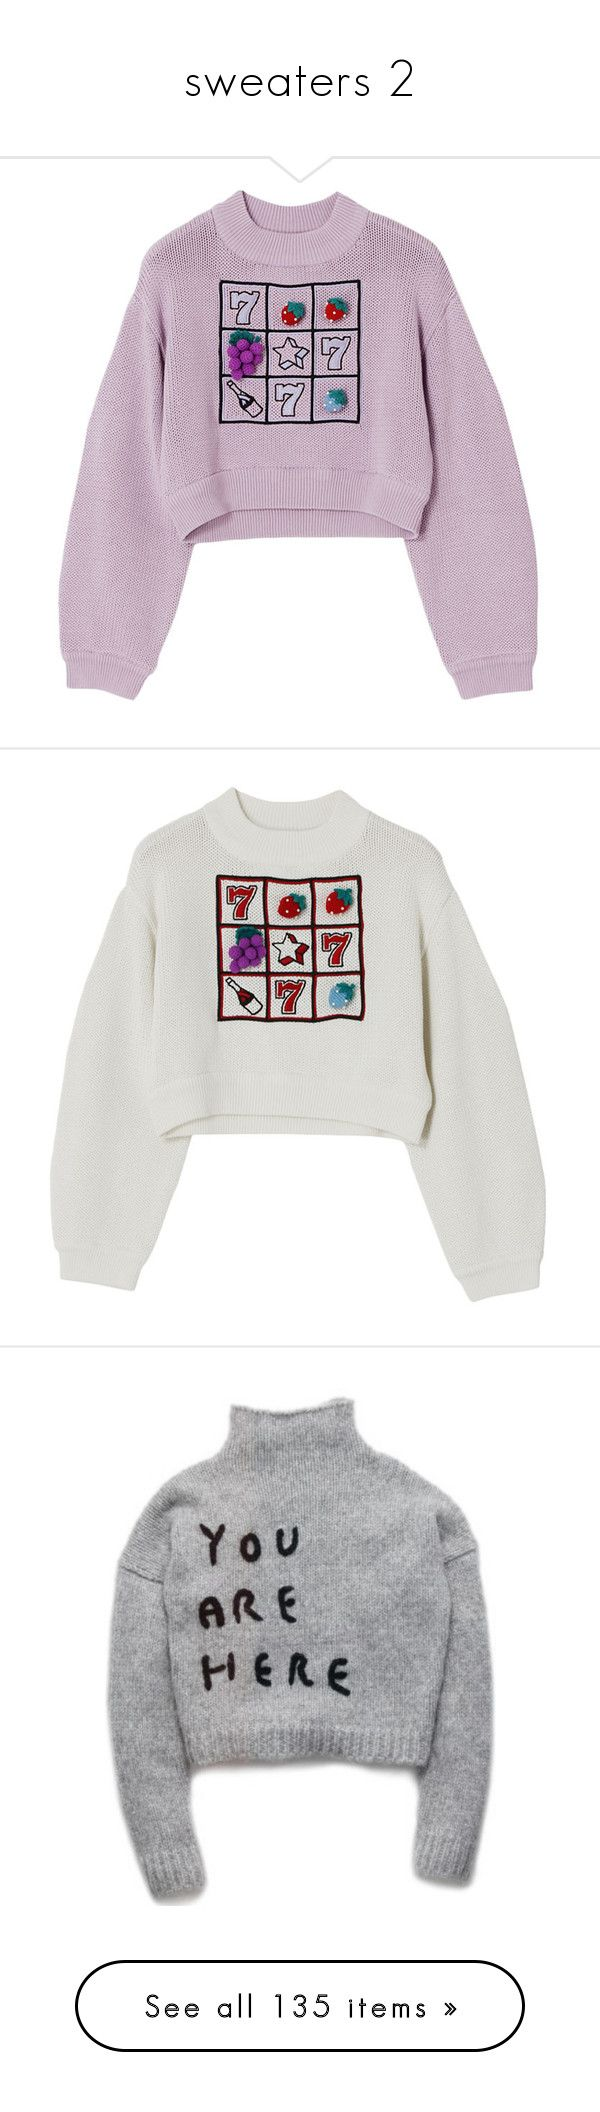 """""""sweaters 2"""" by kittensoft ❤ liked on Polyvore featuring tops, sweaters, jumpers, sweatshirts, purple jumper, purple sweater, purple top, white, white top and white sweater"""